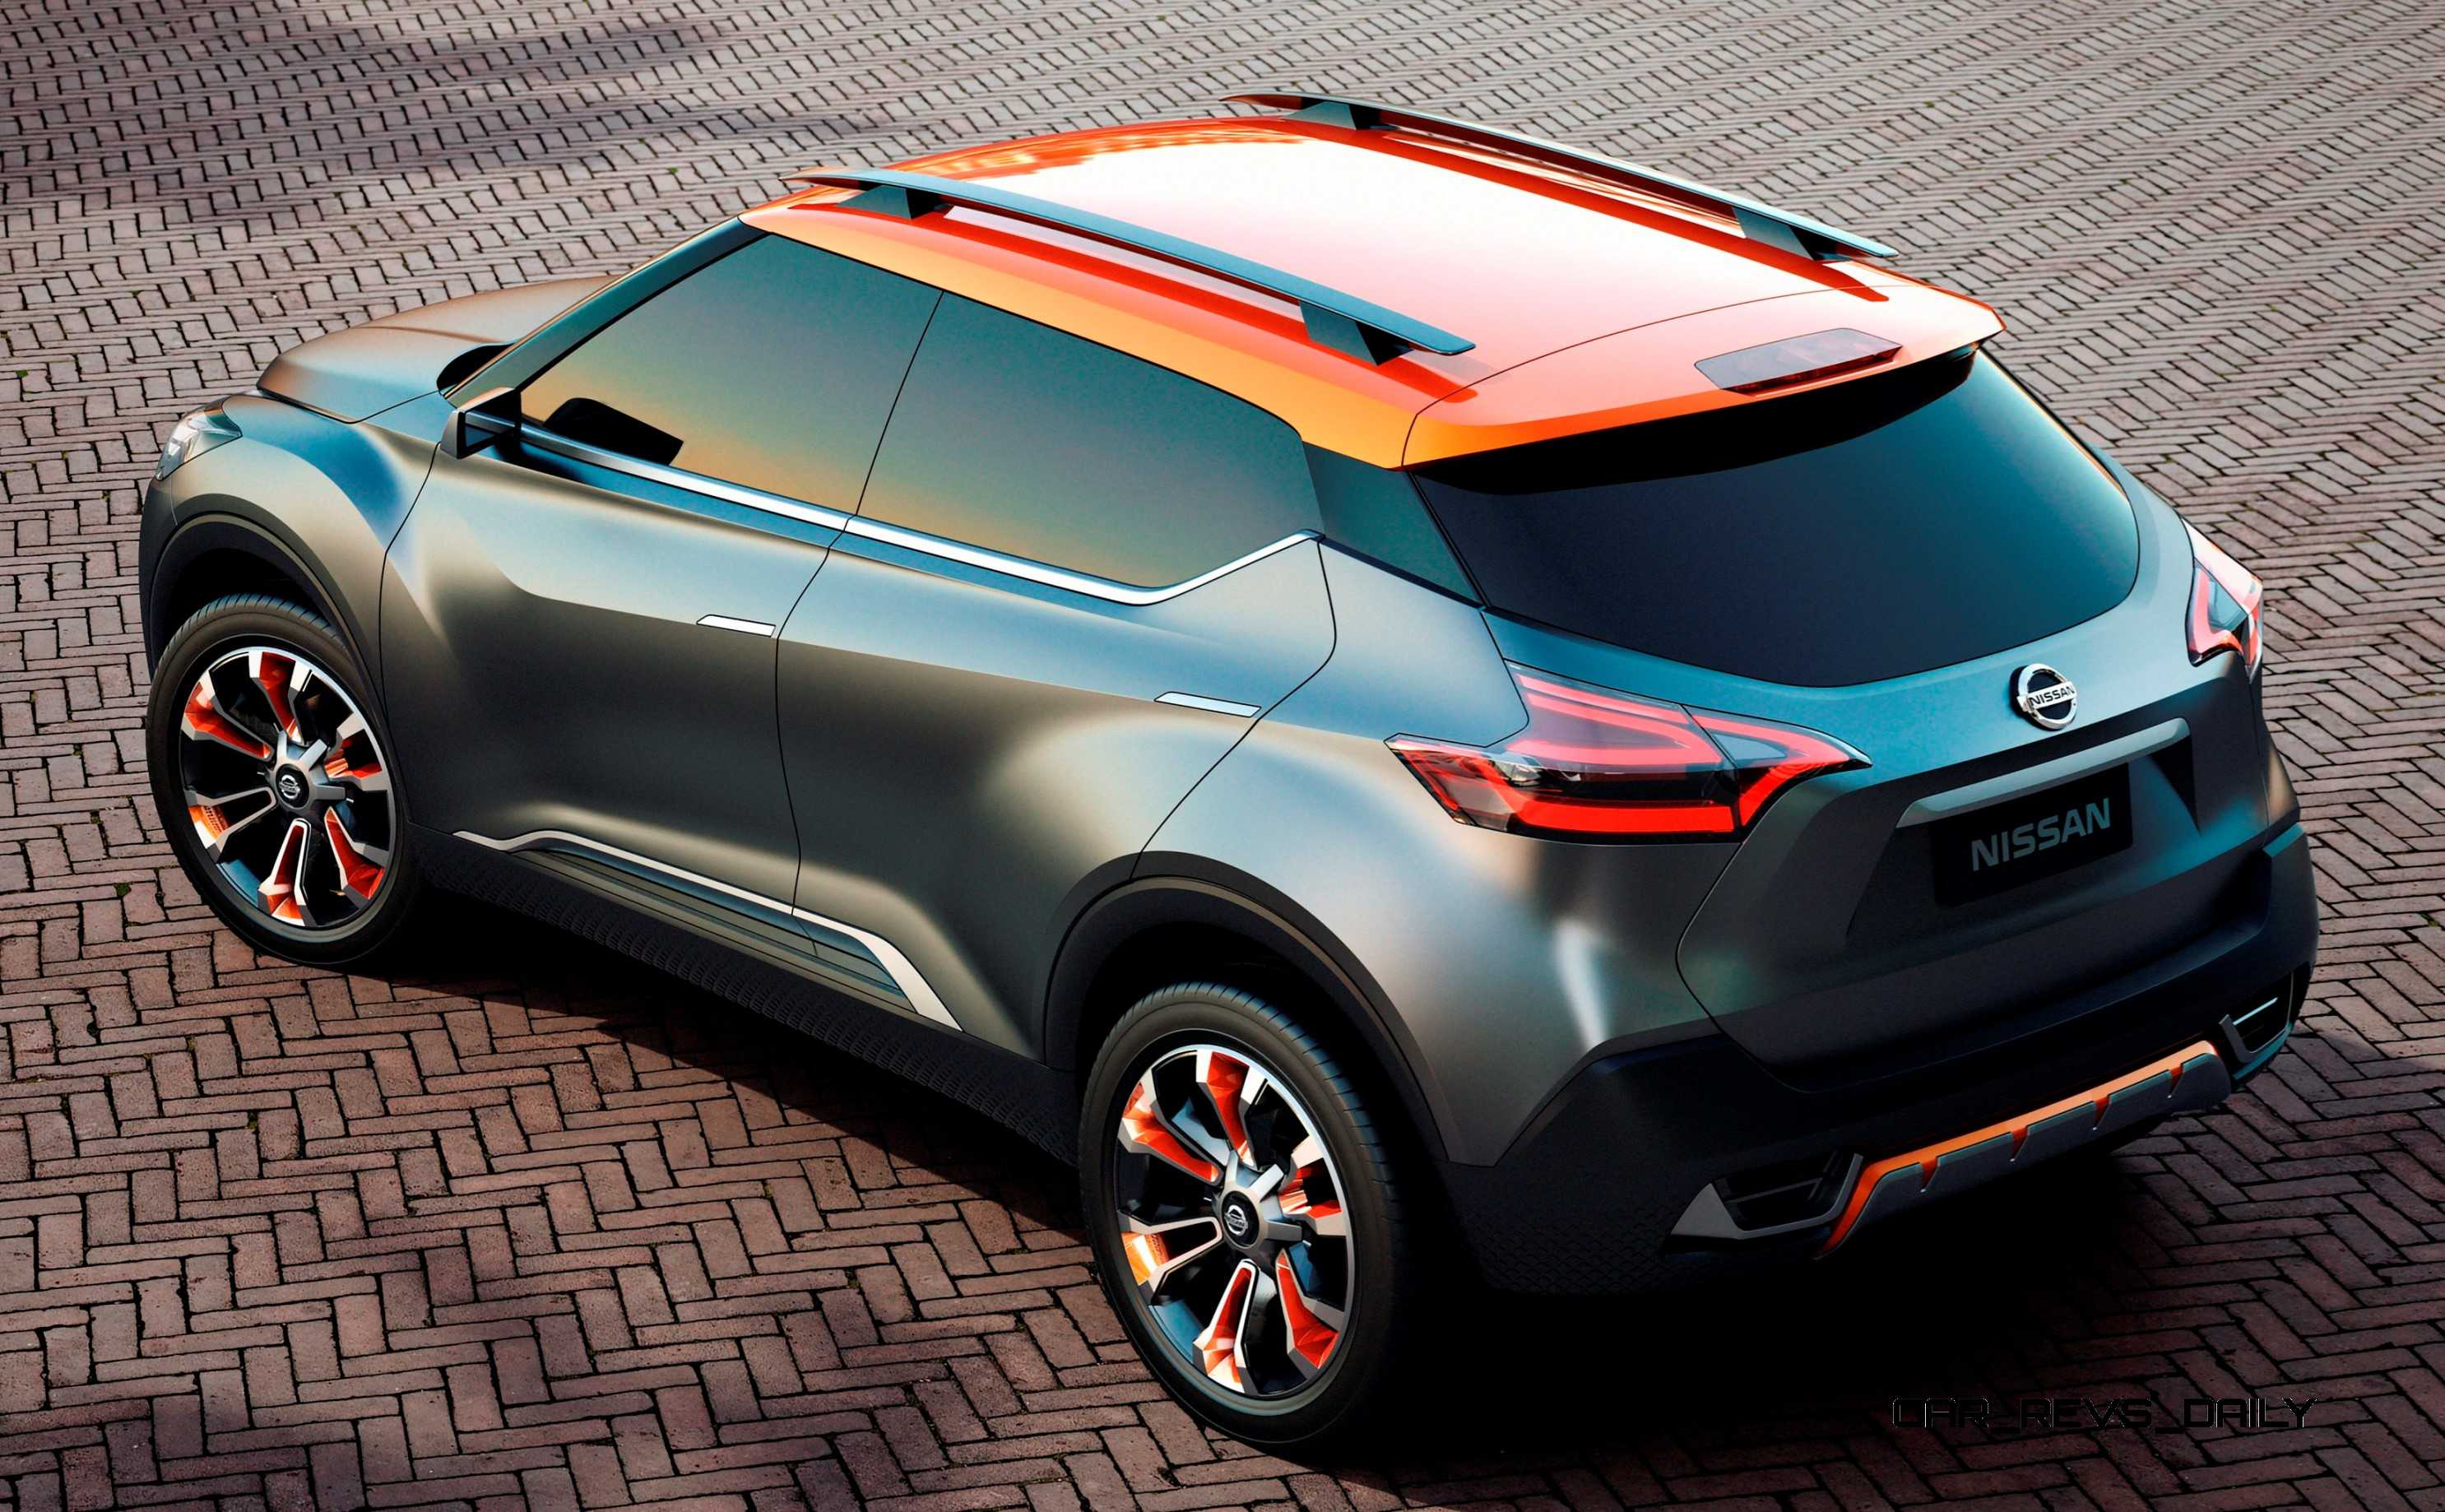 2014 Nissan Kicks Concept Is New Sao Paolo Off-Road Crossover